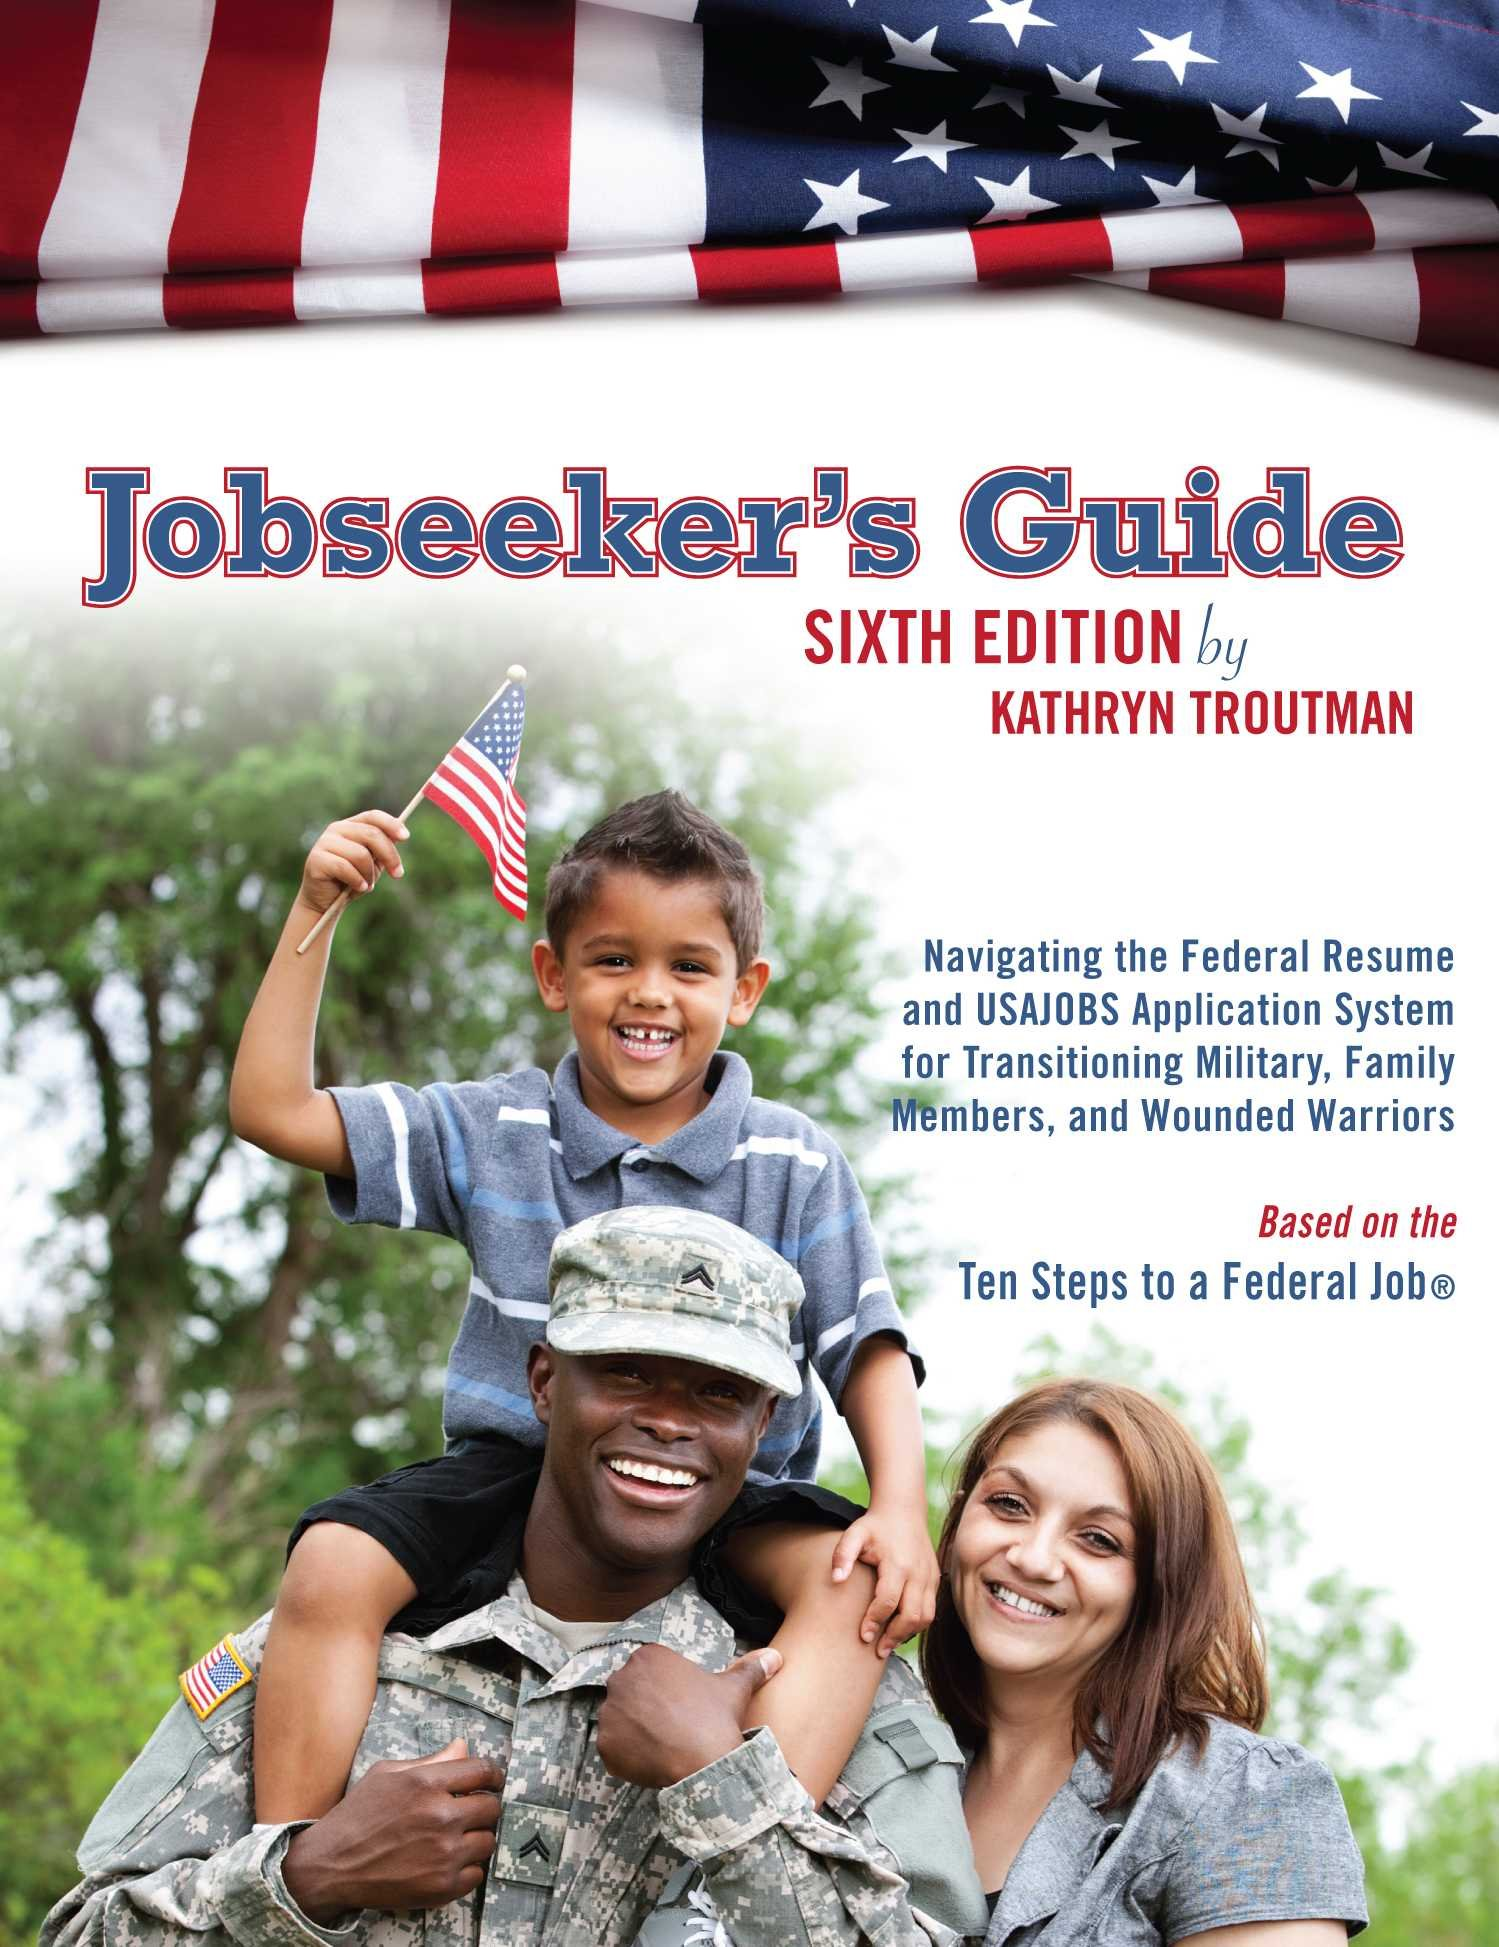 Jobseekers Guide Navigating The Federal Resume And Usajobs